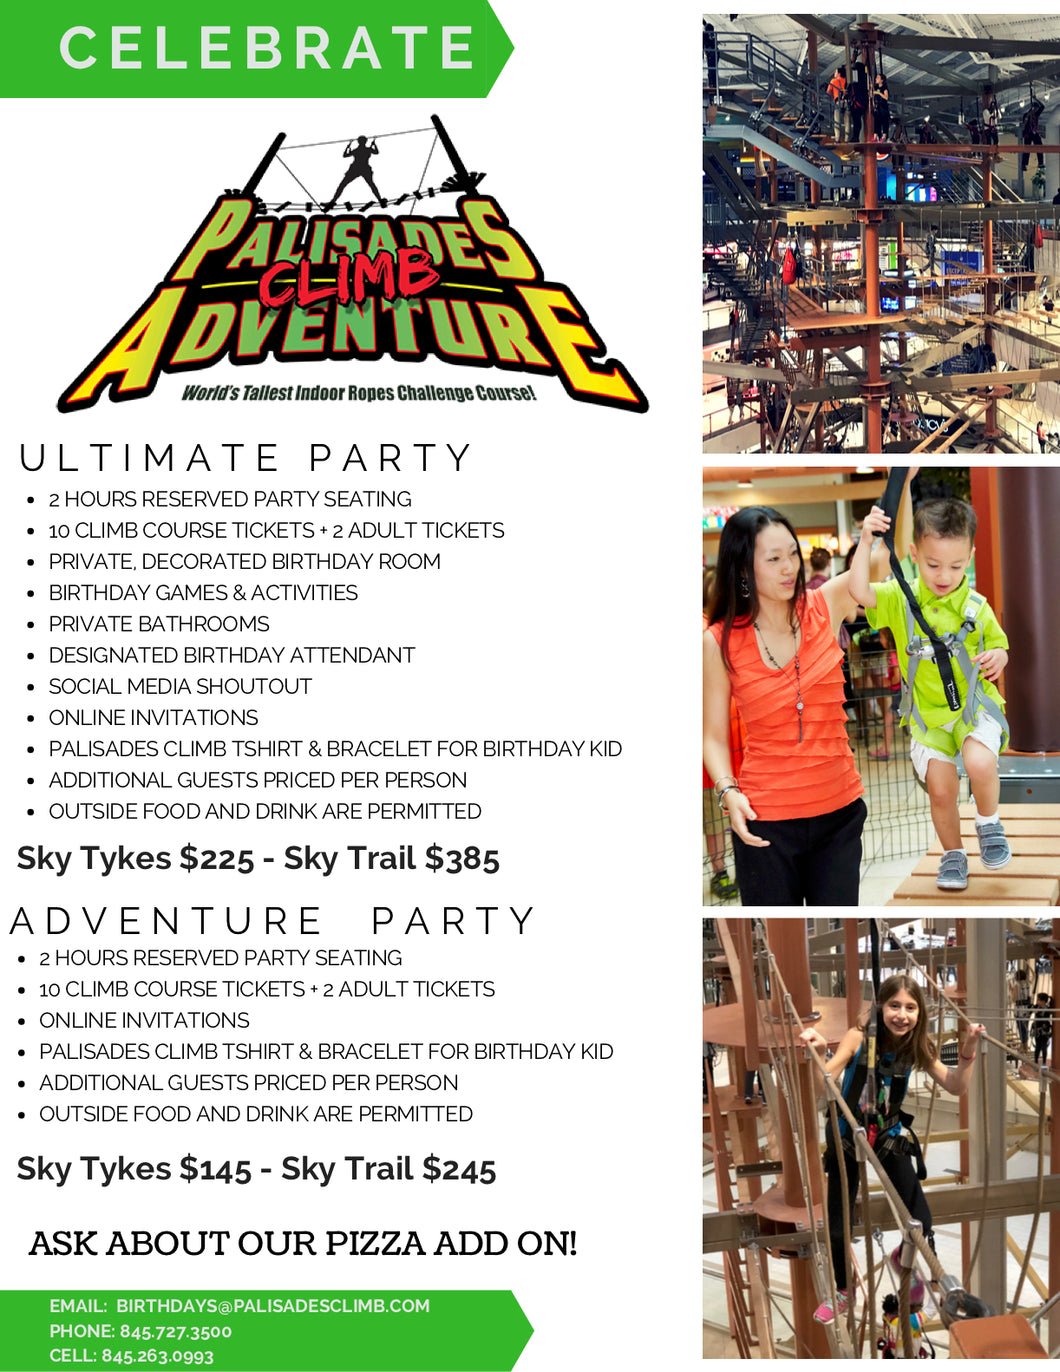 THE SKY TYKES ADVENTURE PARTY (For Participants Over 42″ Tall)